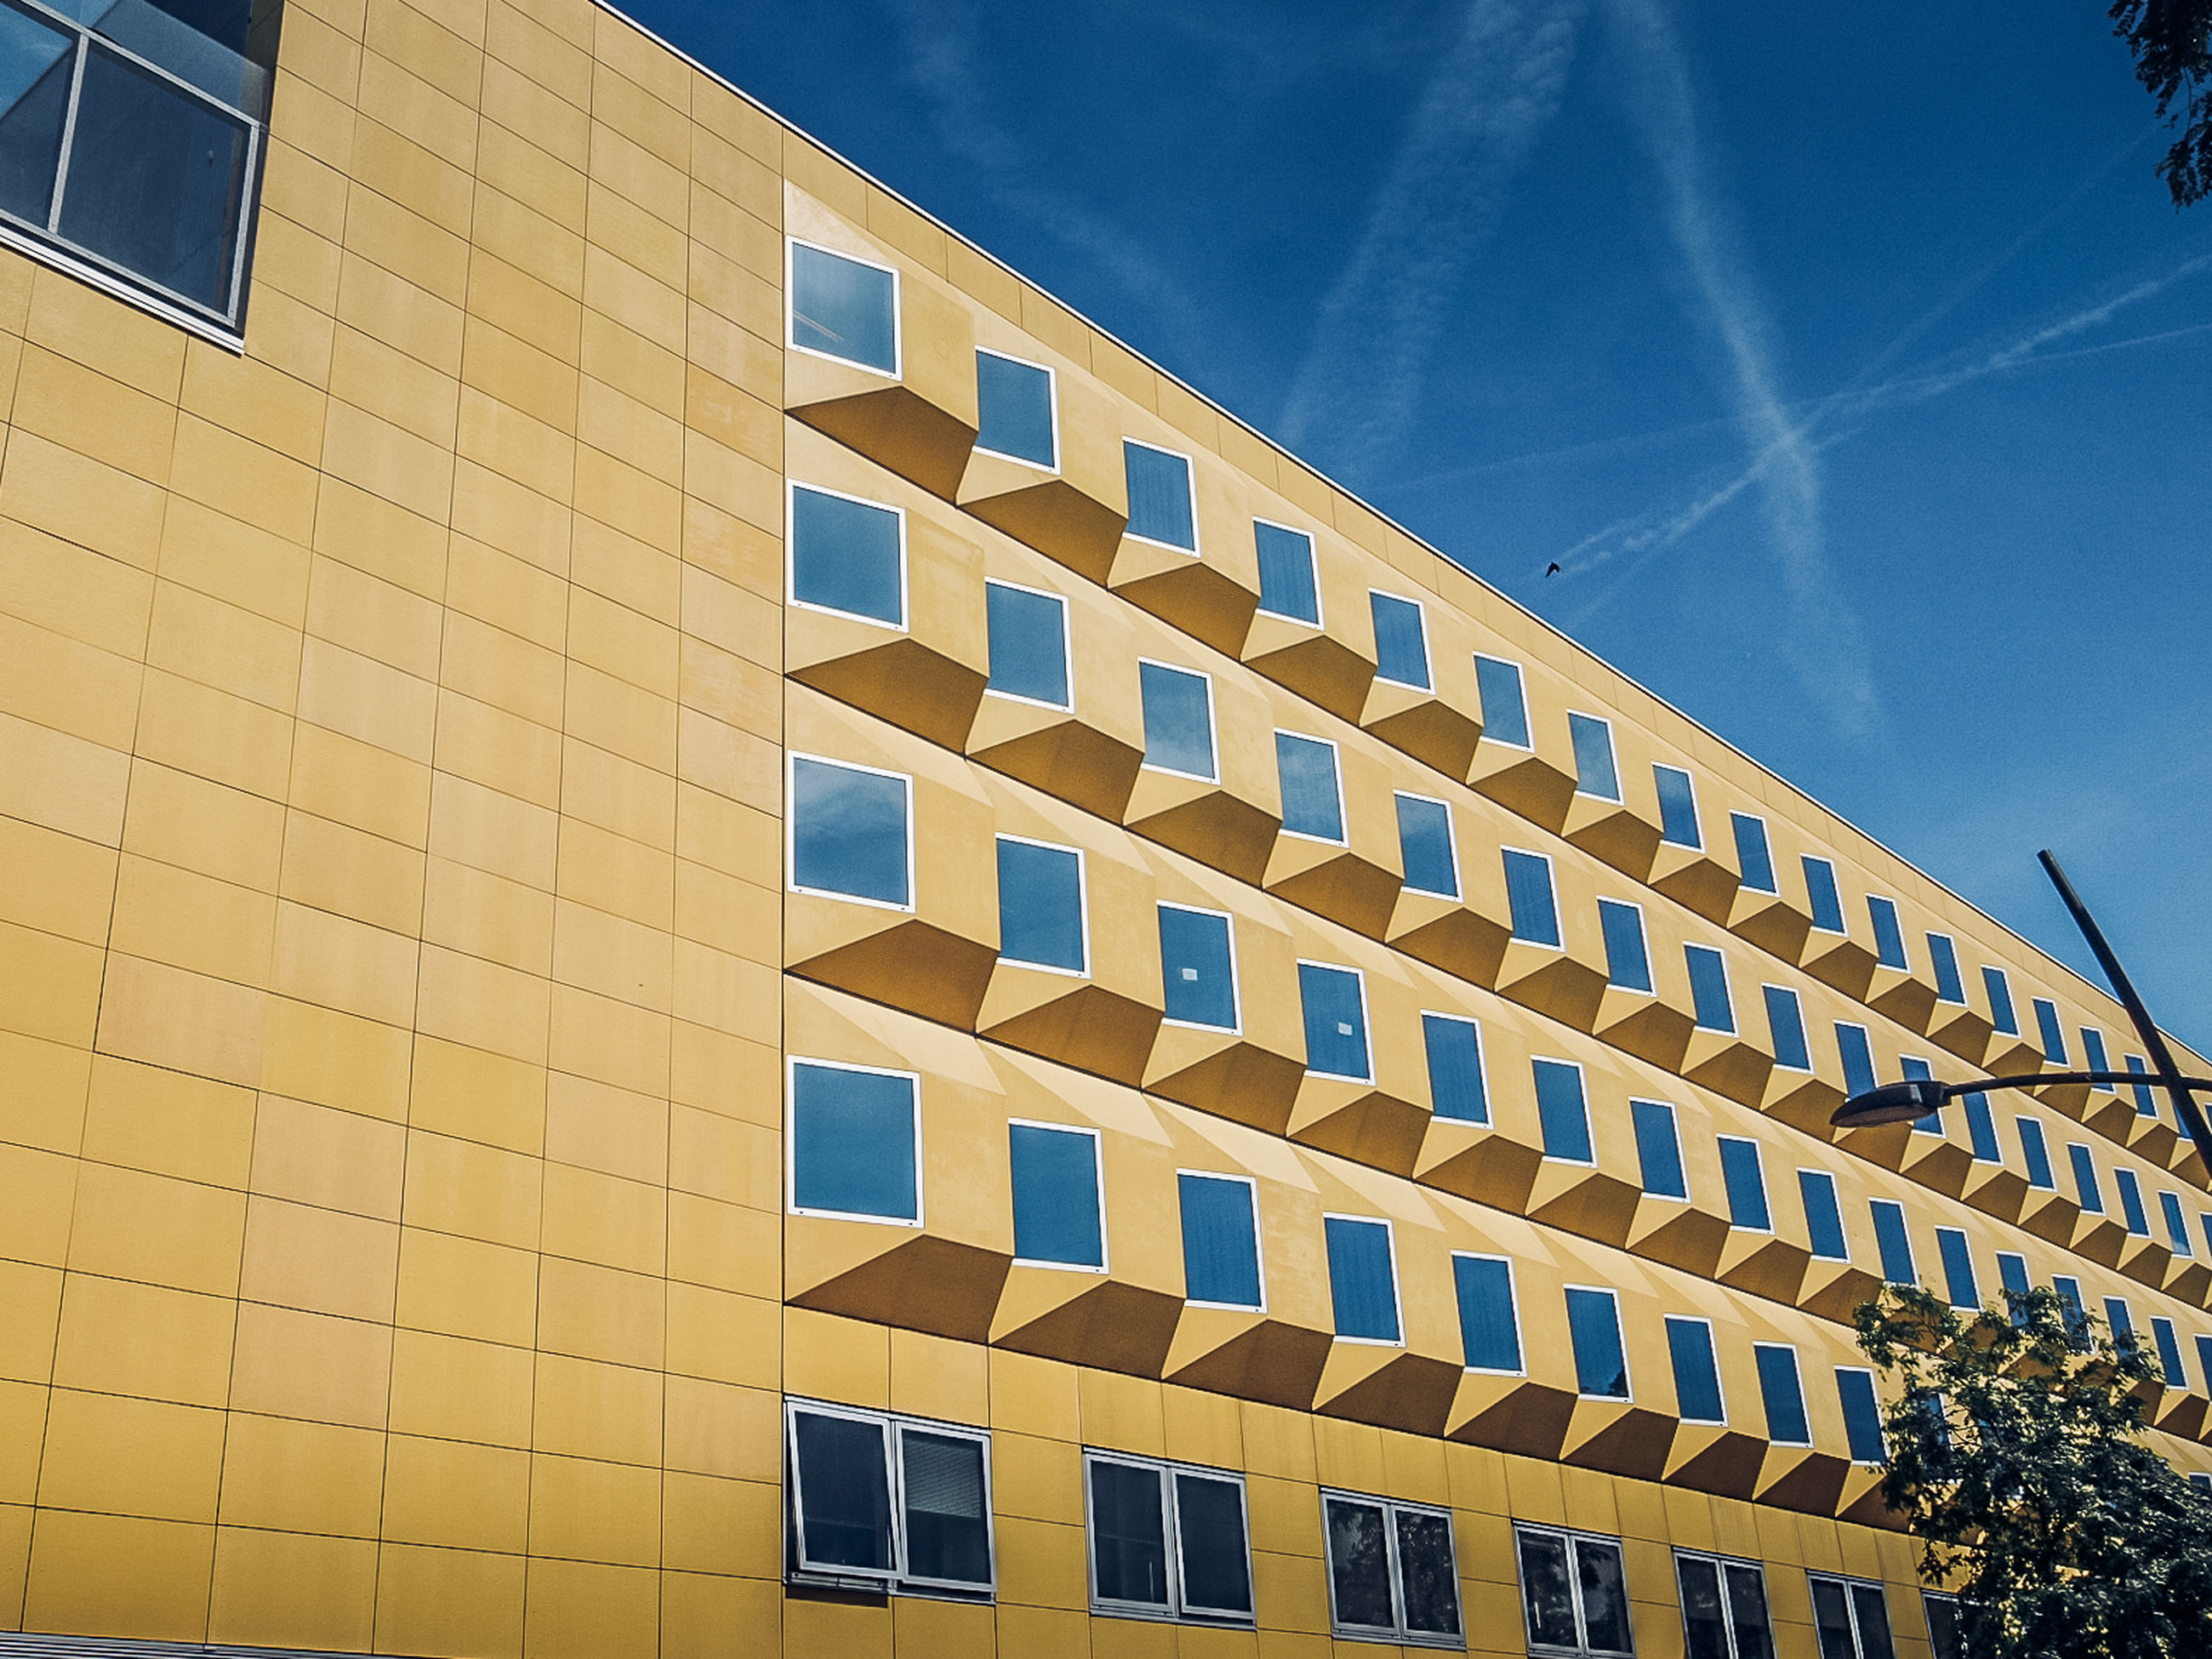 built structure, architecture, building exterior, sky, low angle view, building, window, cloud - sky, nature, sunlight, no people, day, blue, in a row, outdoors, city, pattern, modern, yellow, repetition, office building exterior